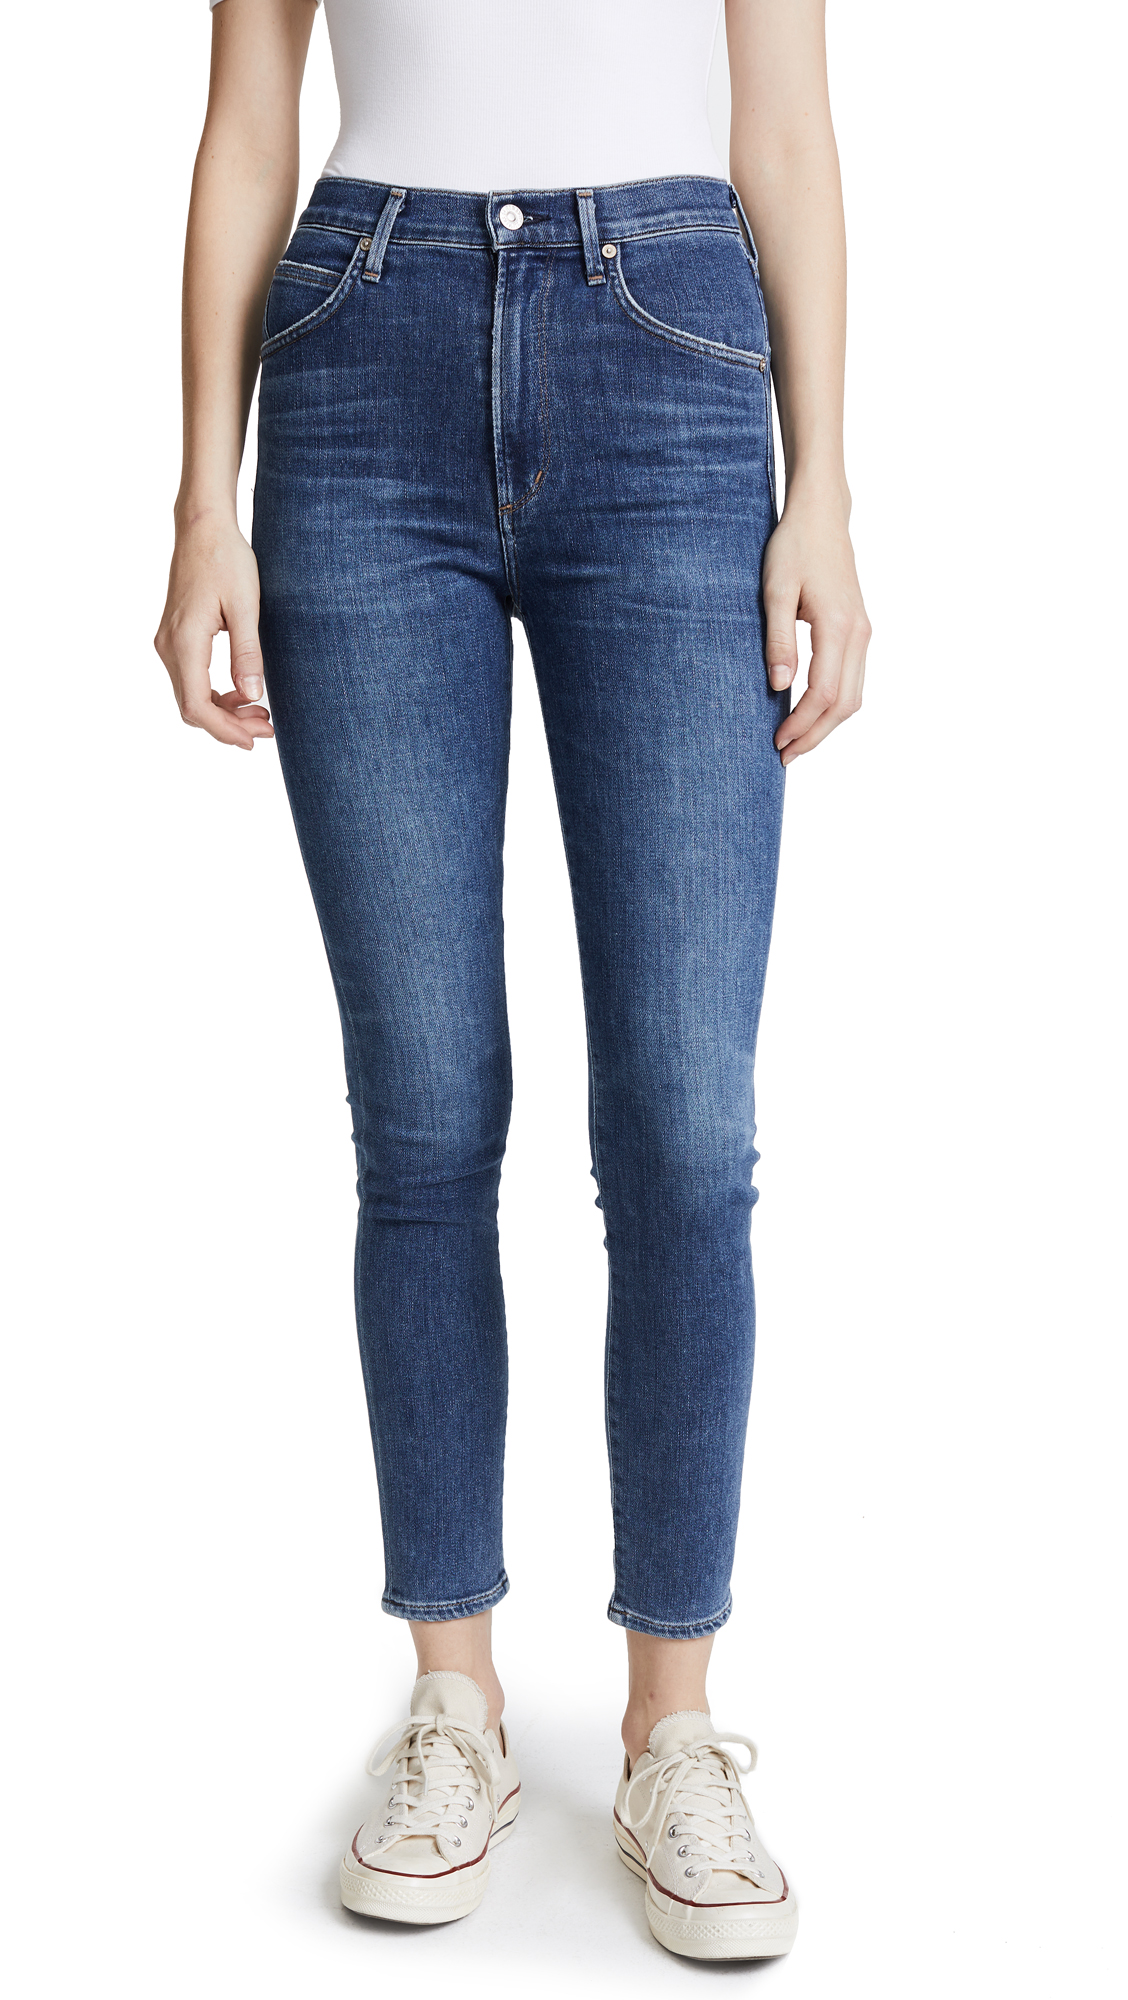 Citizens of Humanity Chrissy High Rise Jeans - Hotline